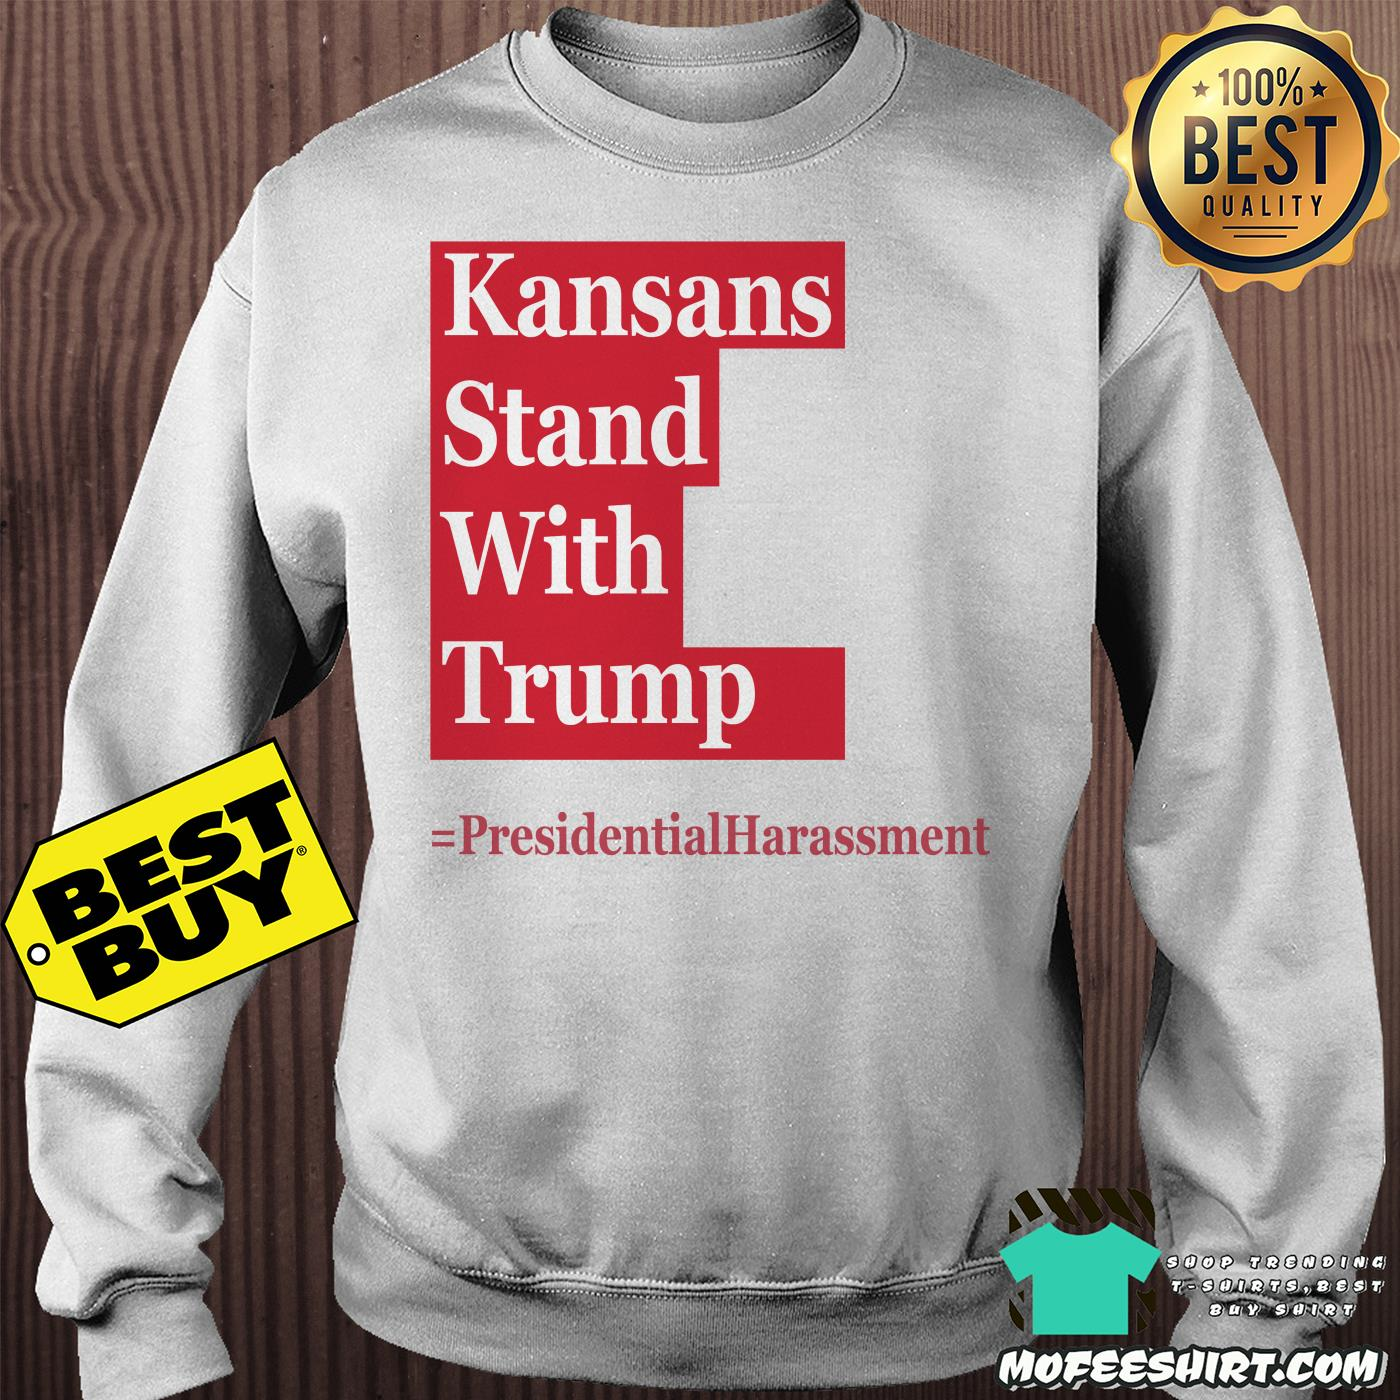 kansans stand with trump presidential harassment sweatshirt - Kansans stand with Trump Presidential Harassment shirt